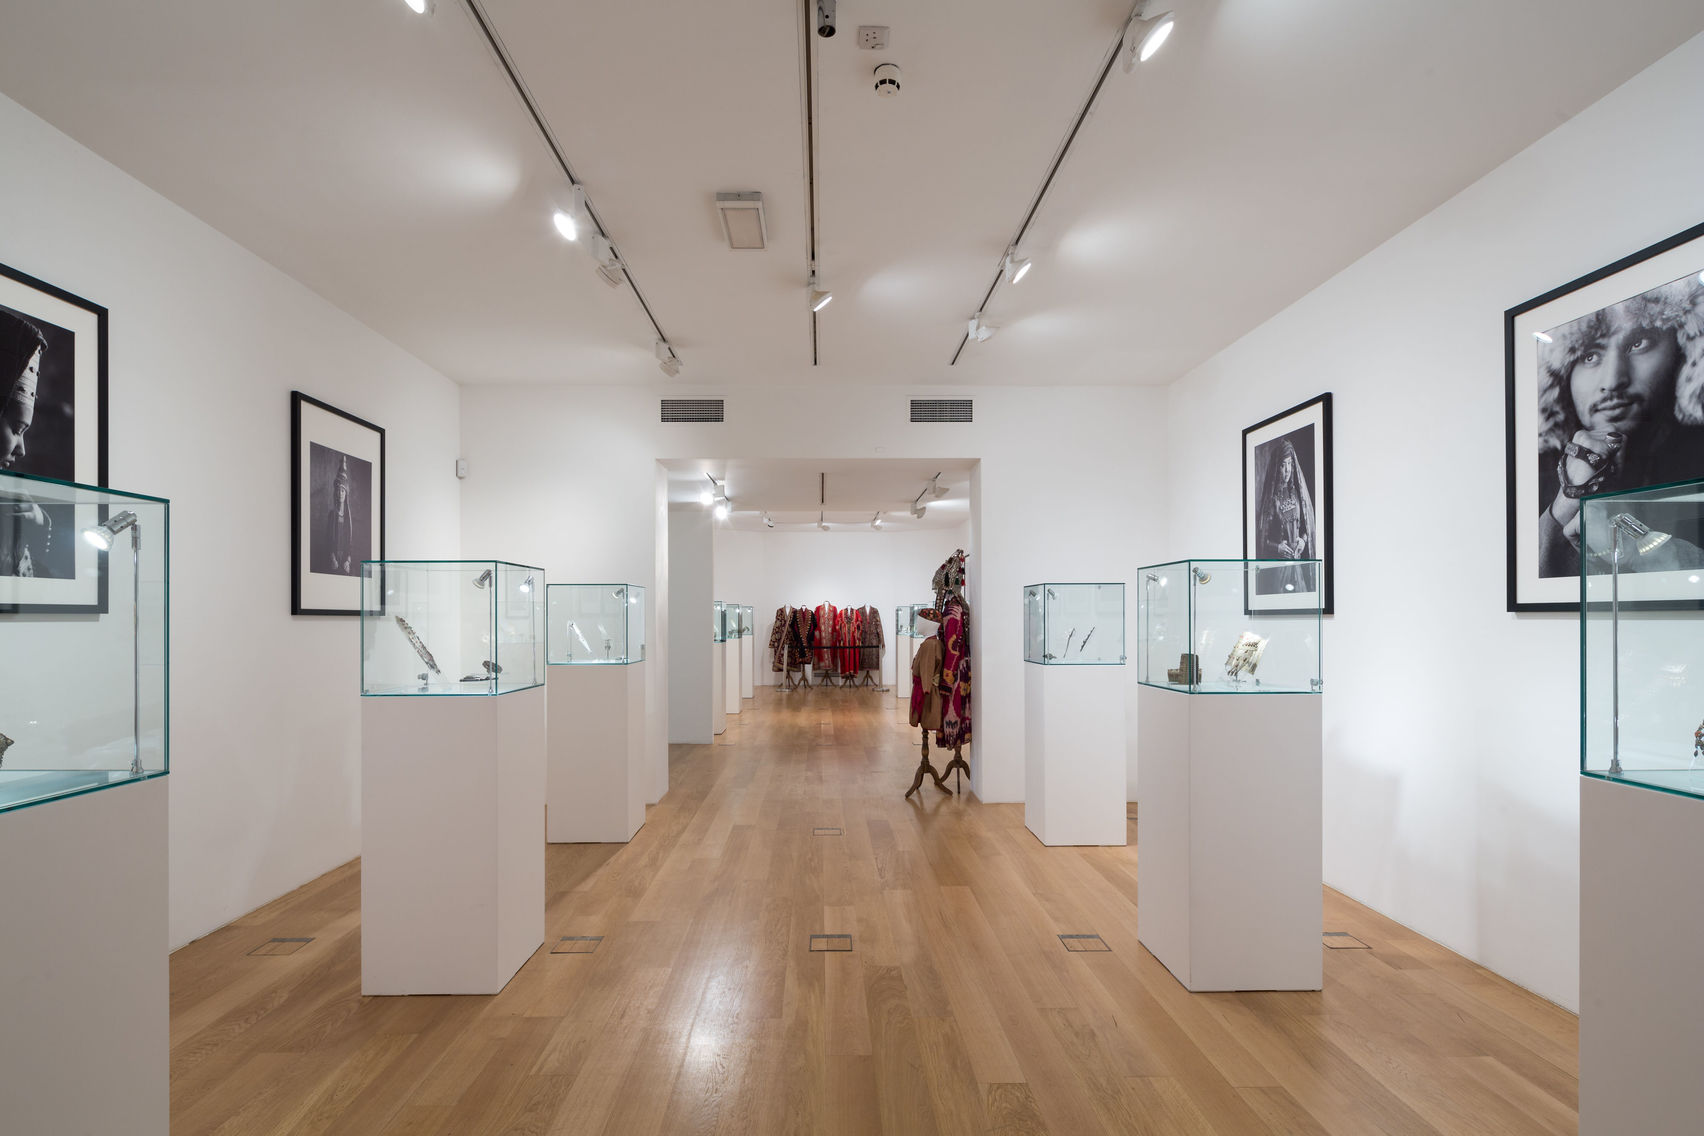 Gallery, Asia House